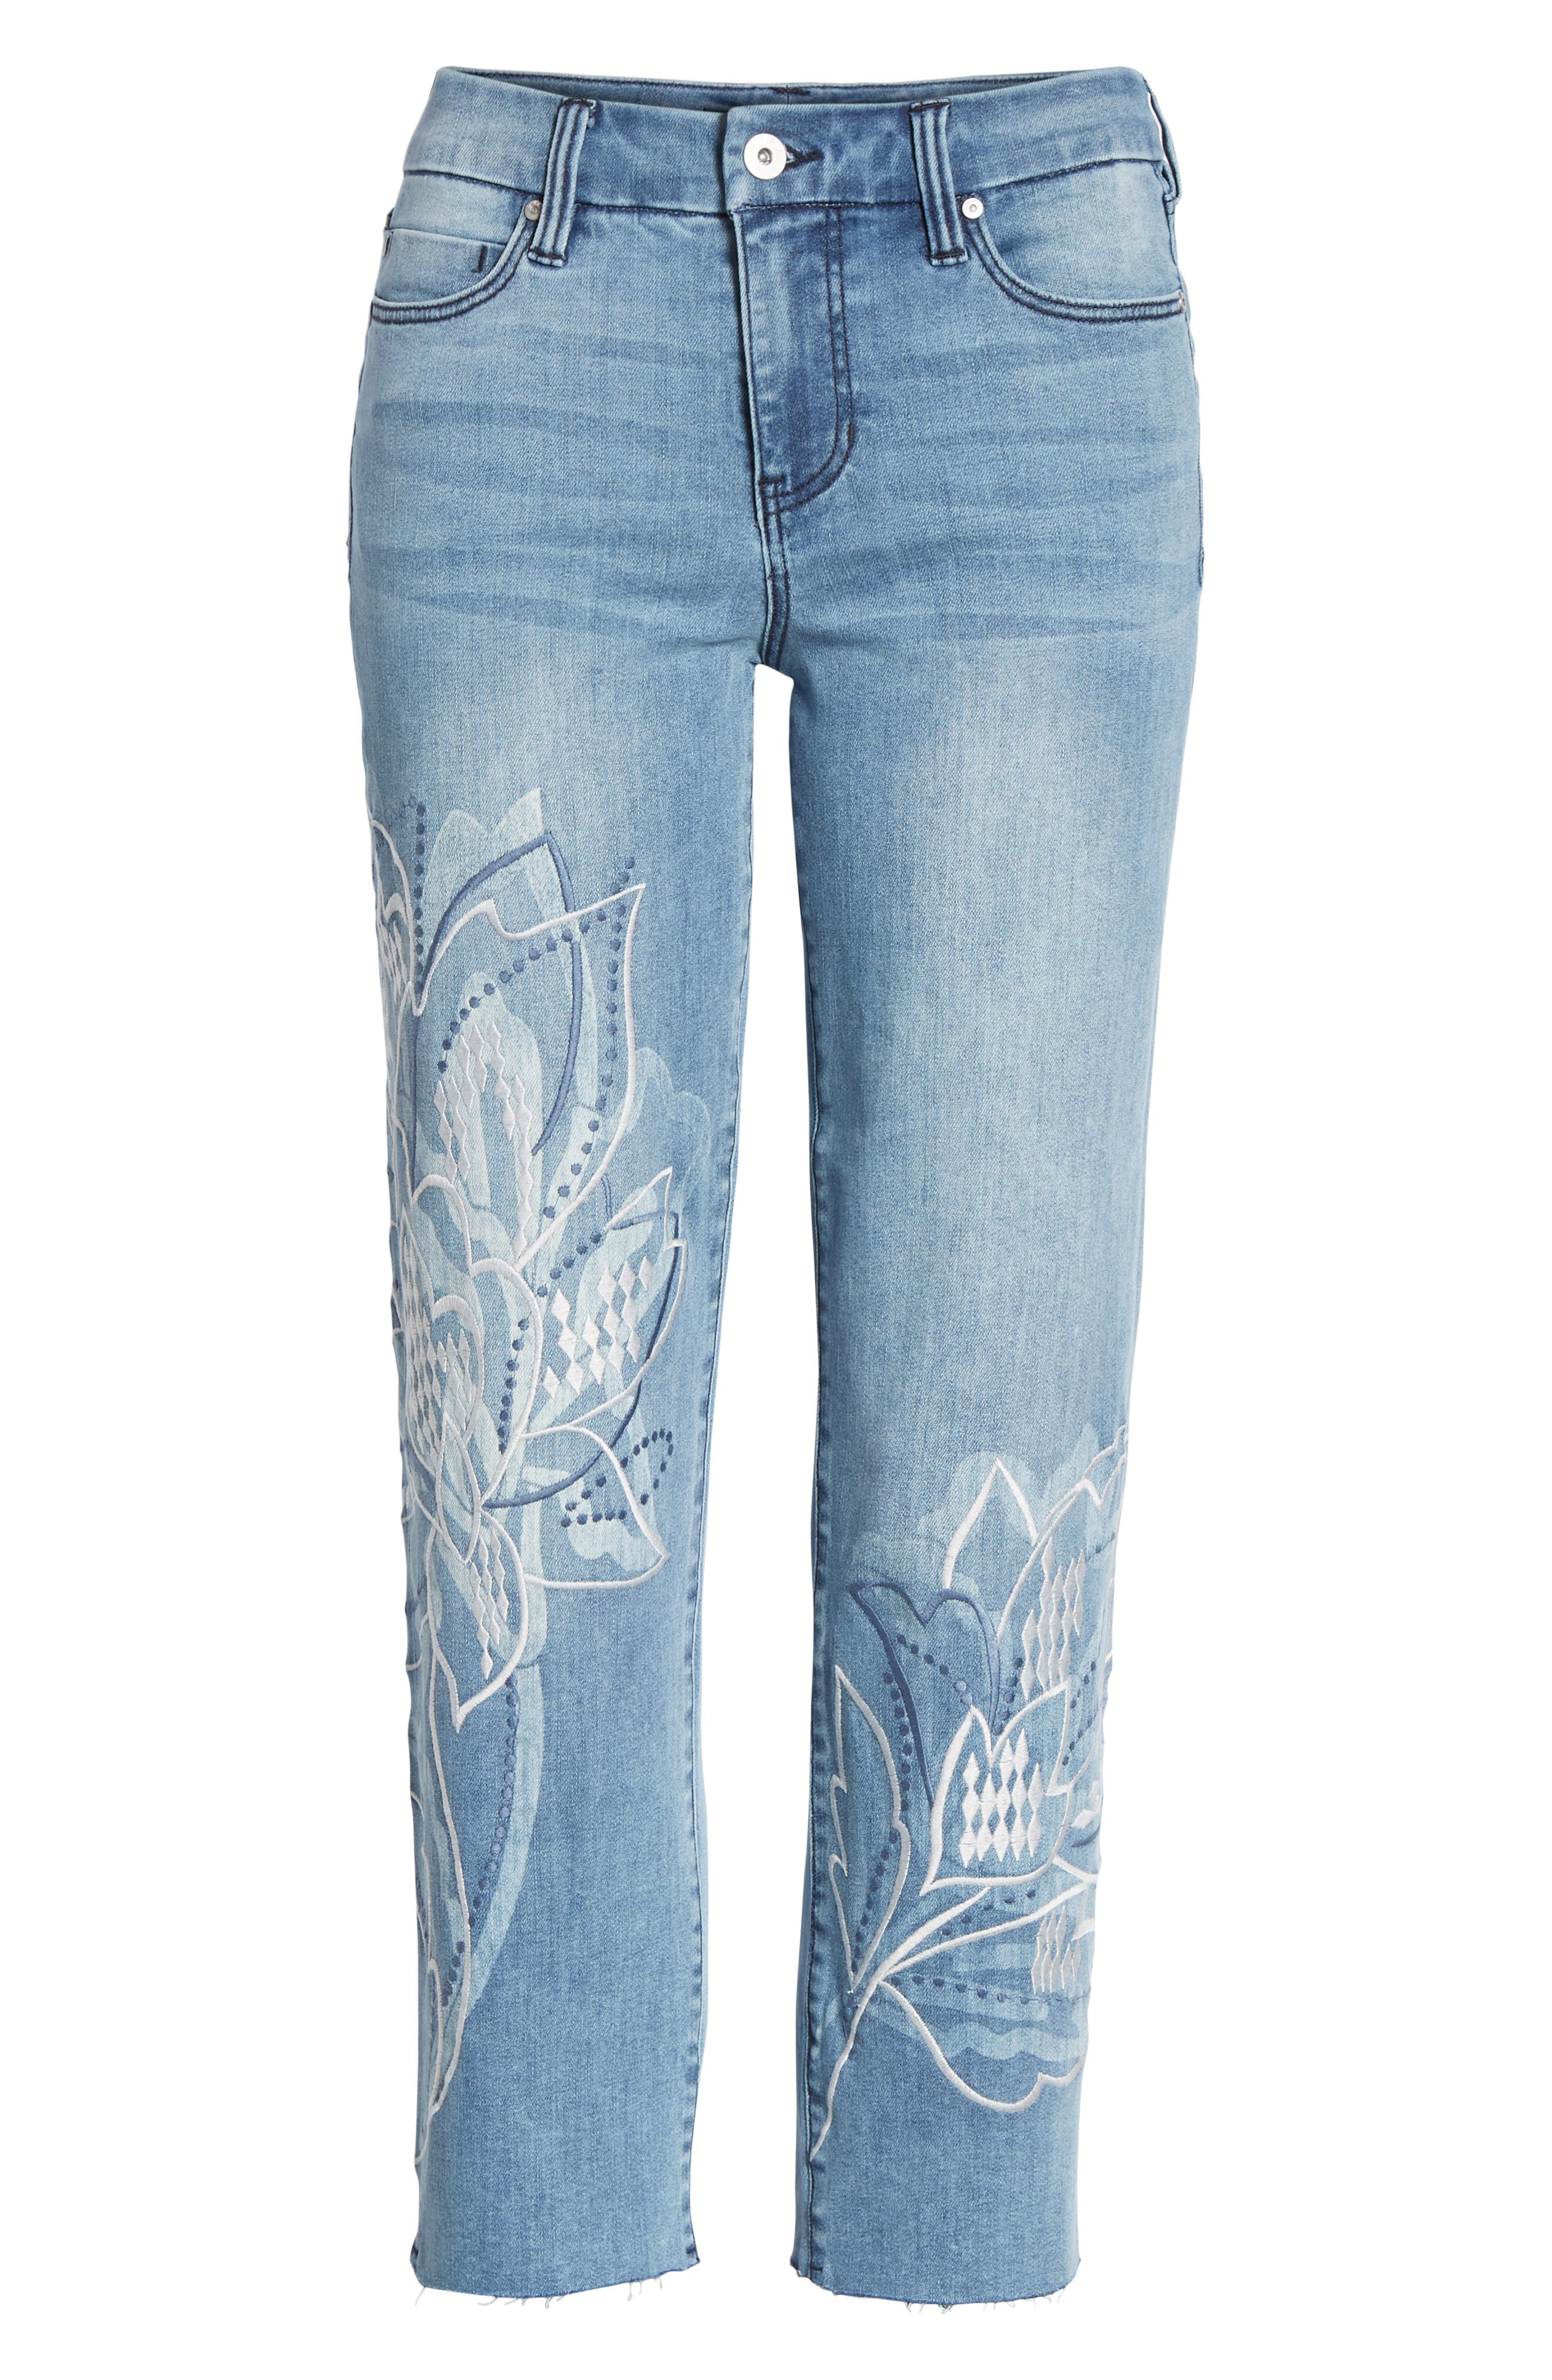 LVPL by Liverpool Carter Floral Embroidery Crop Jeans,                             Alternate thumbnail 7, color,                             Devonshire Wash